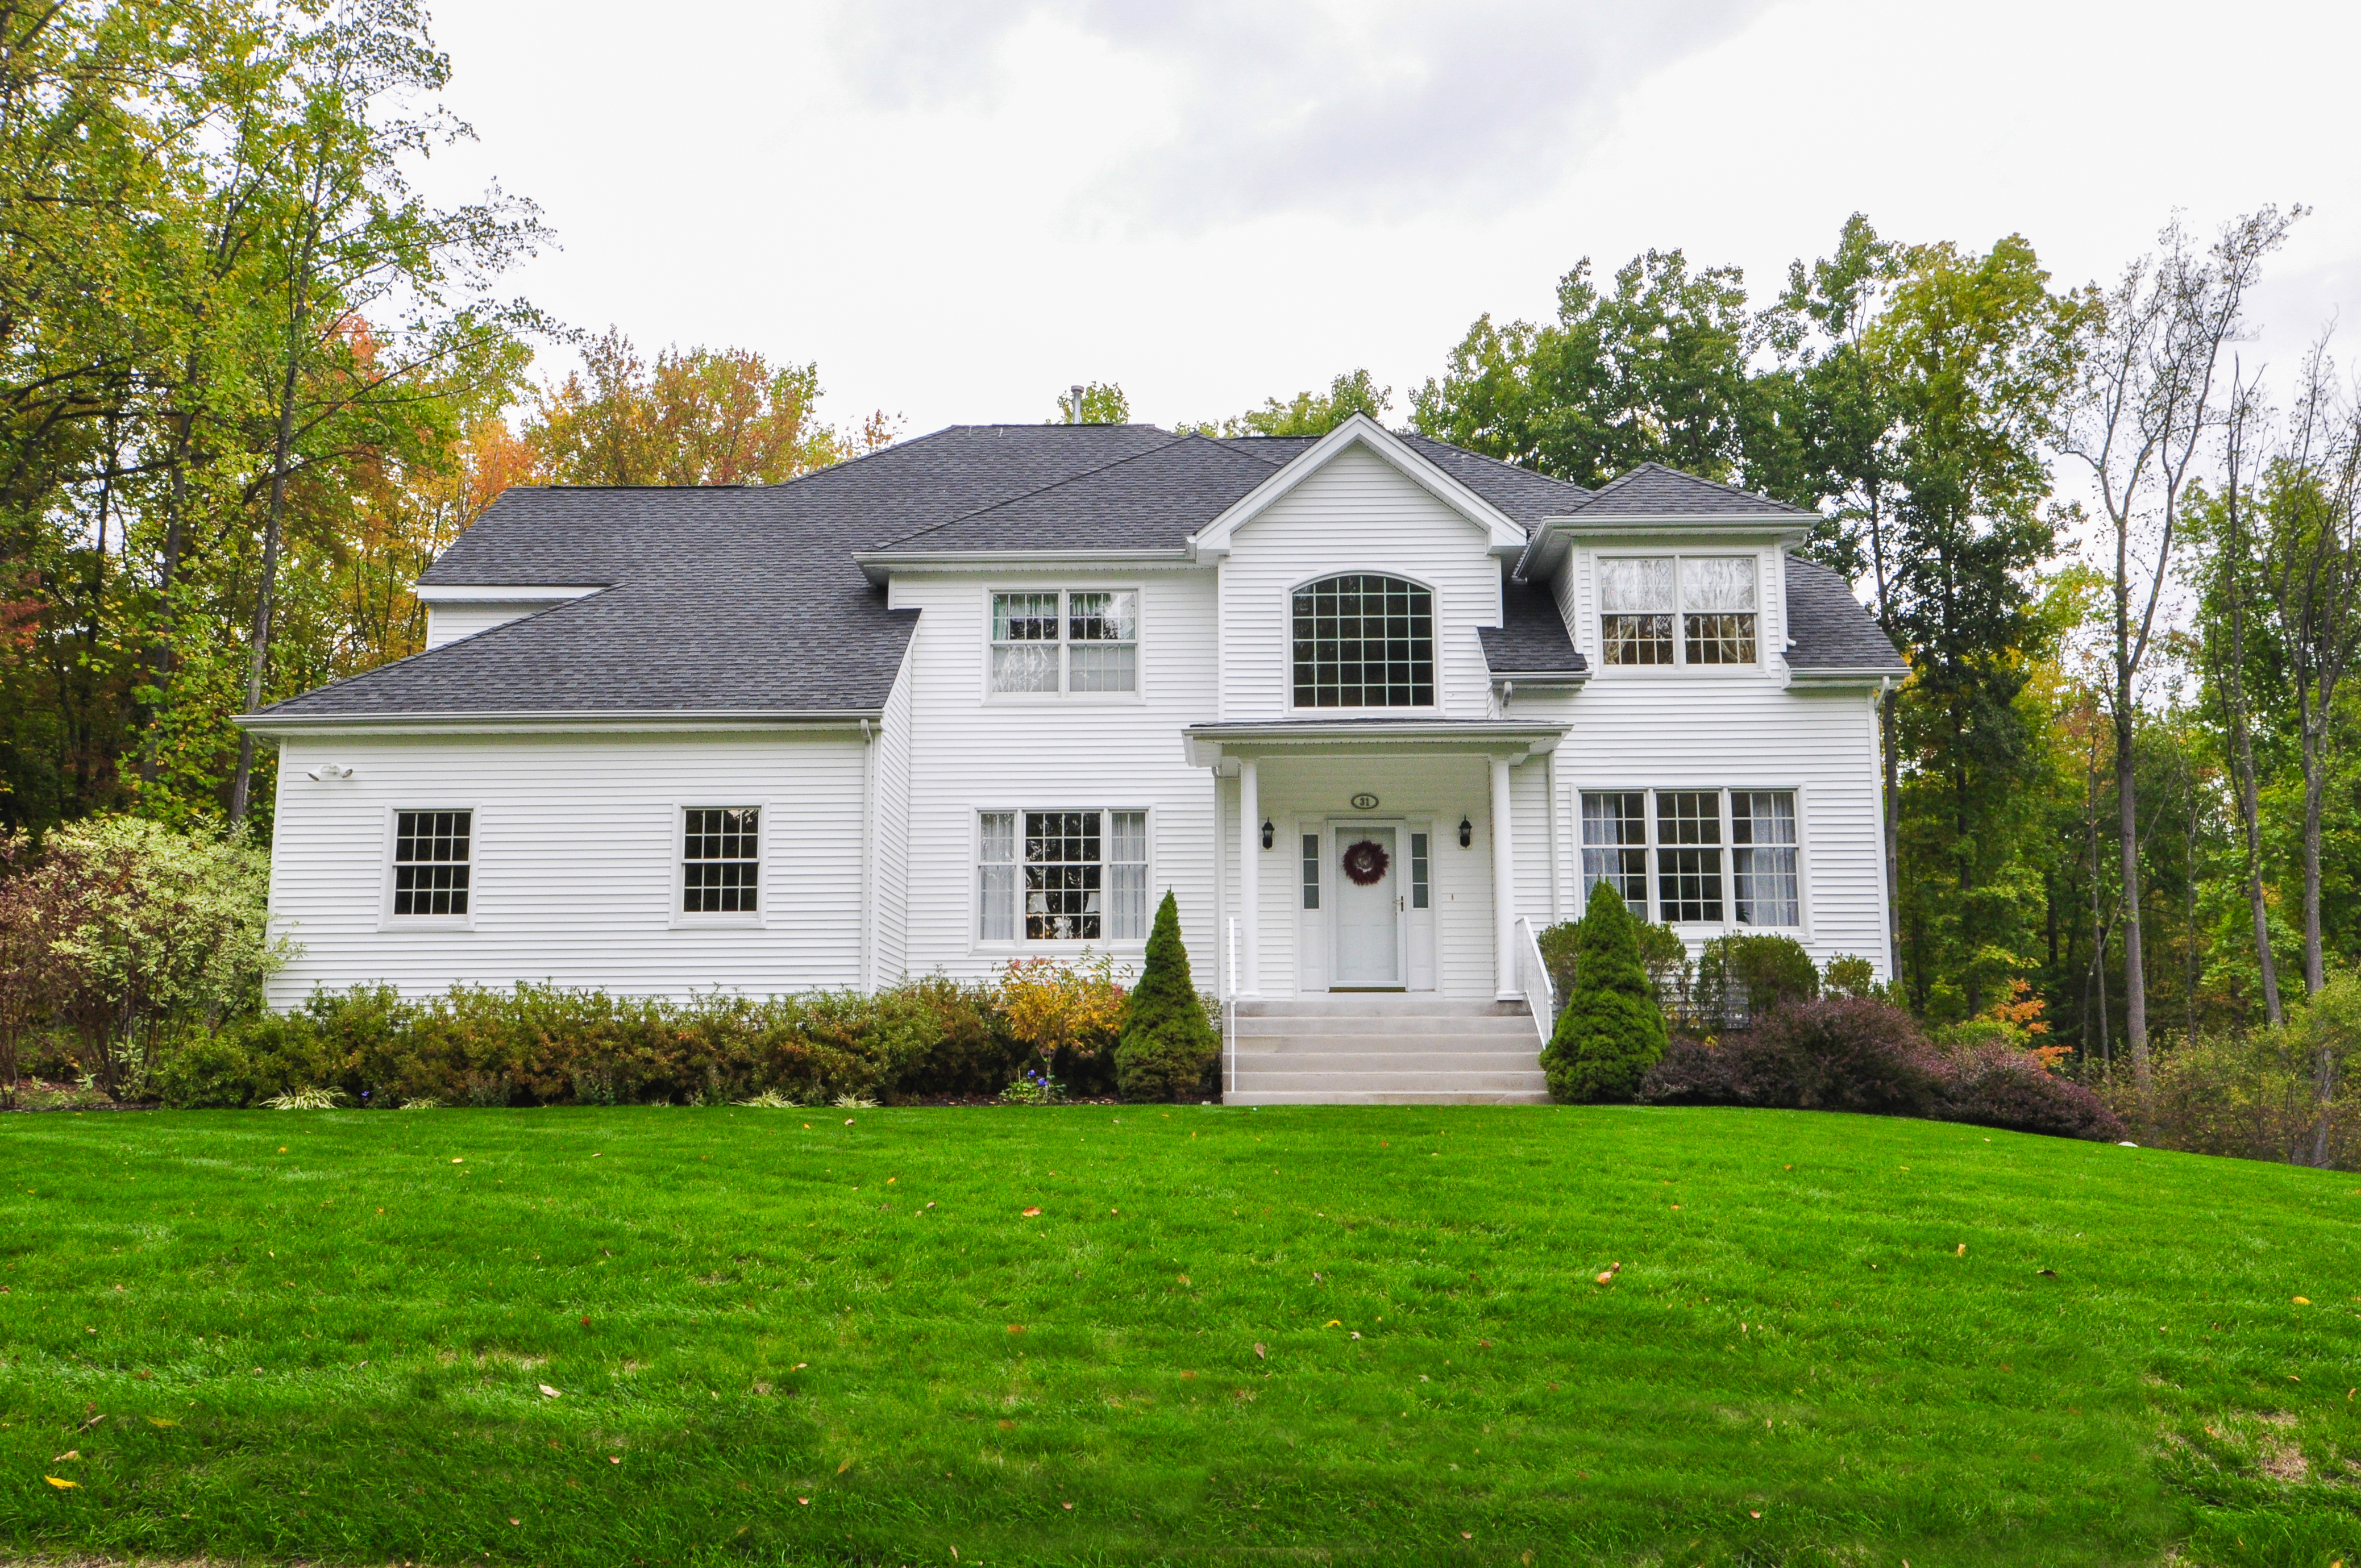 Single Family Home for Sale at Private Largest Model in the Preserve at Somers 31 Putney Road Baldwin Place, New York 10505 United States